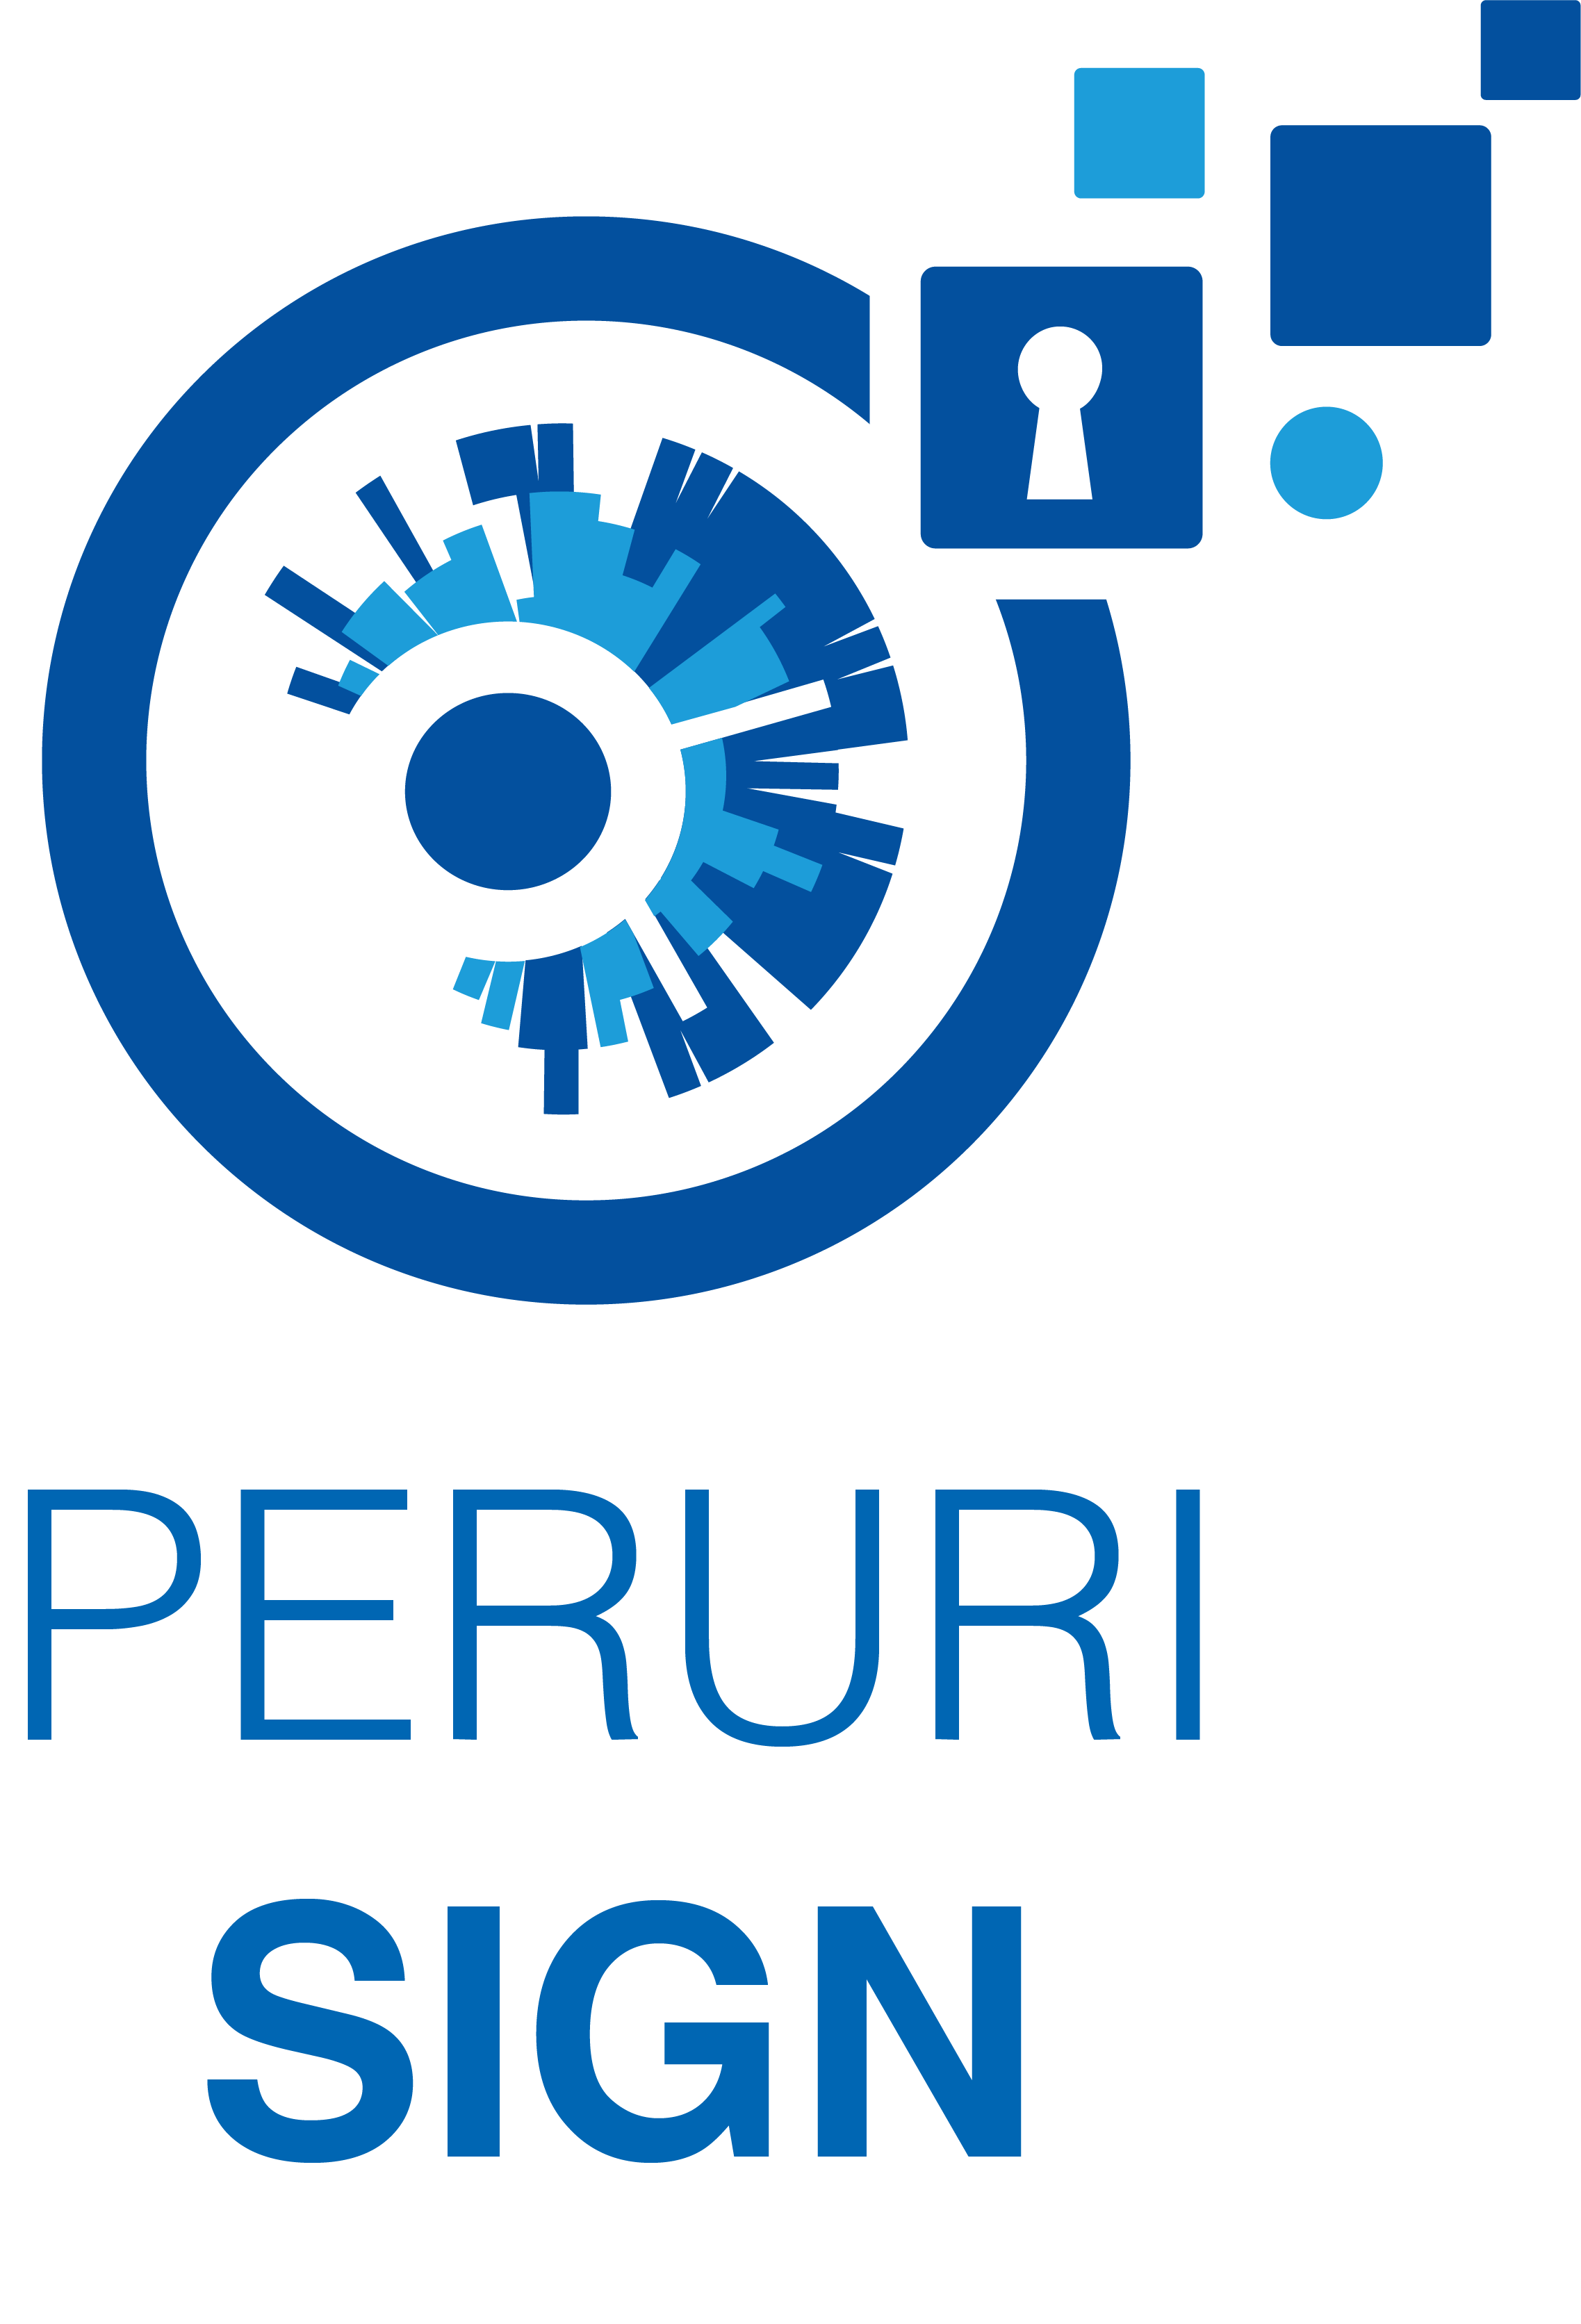 Peruri Sign